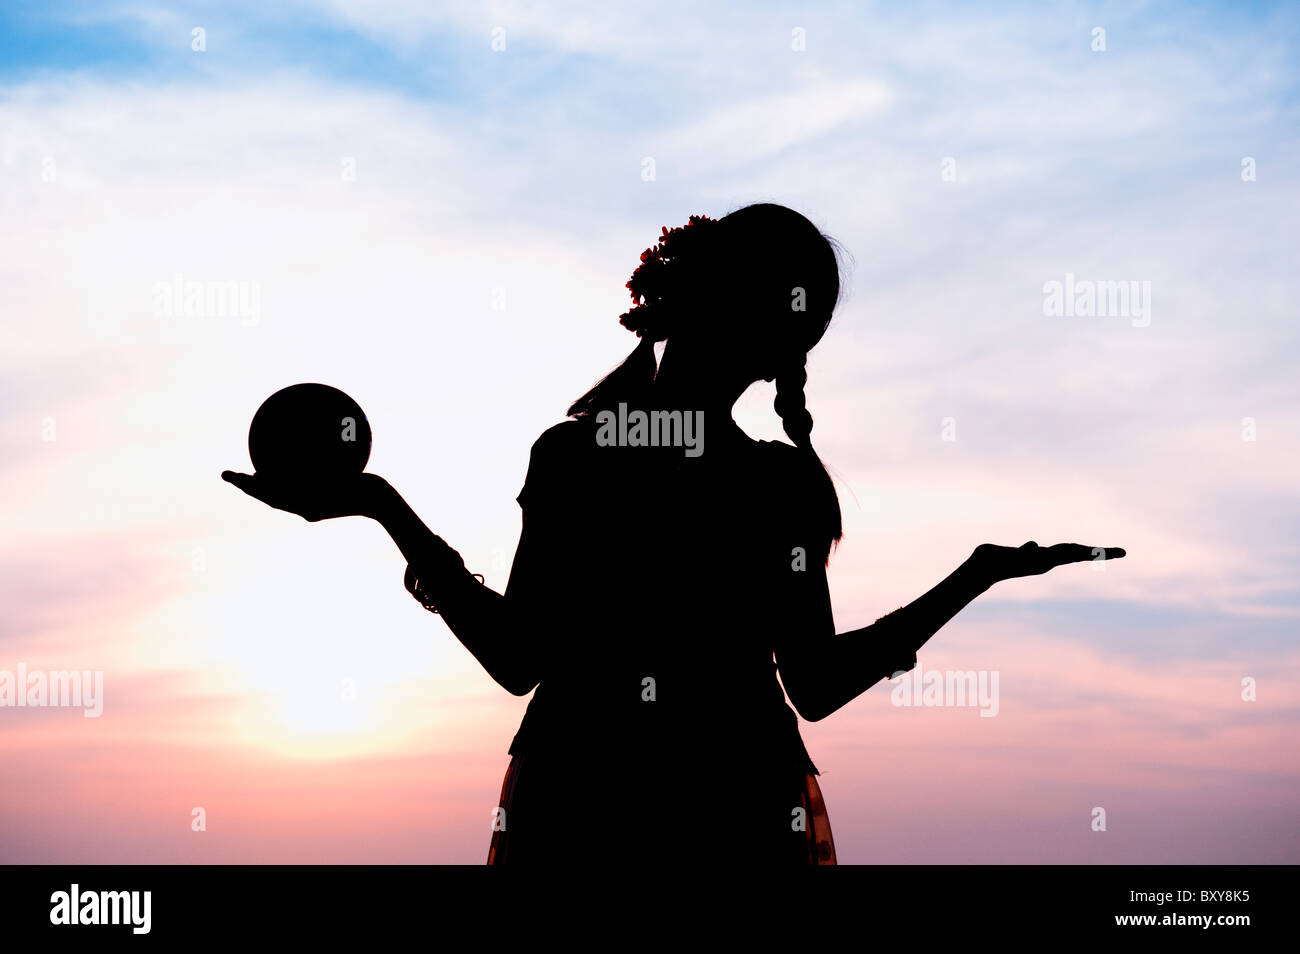 Indian girl silhouette balancing a round shape in her hand in an unconcerned carefree pose. India - Stock Image